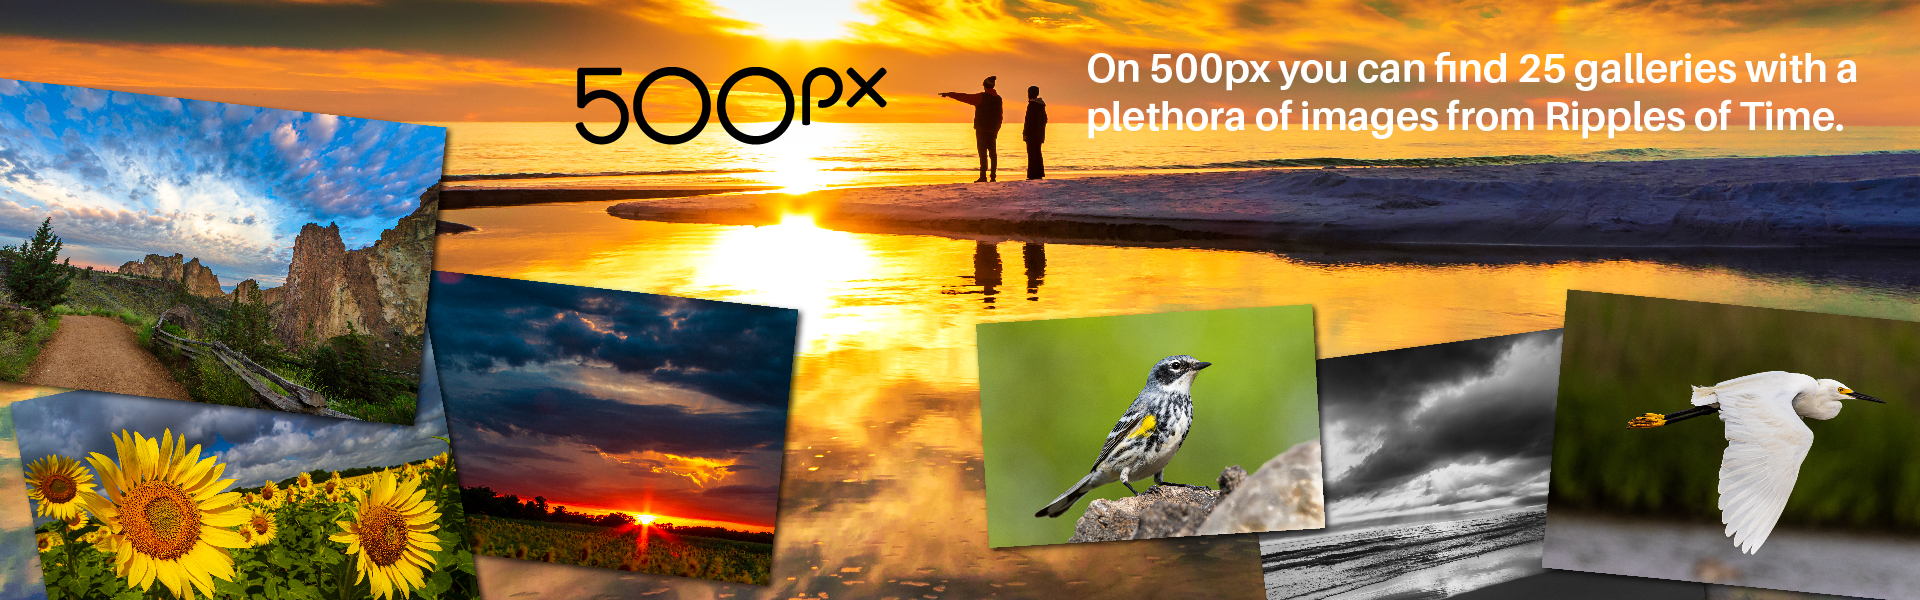 500px banner for Ripples of Time